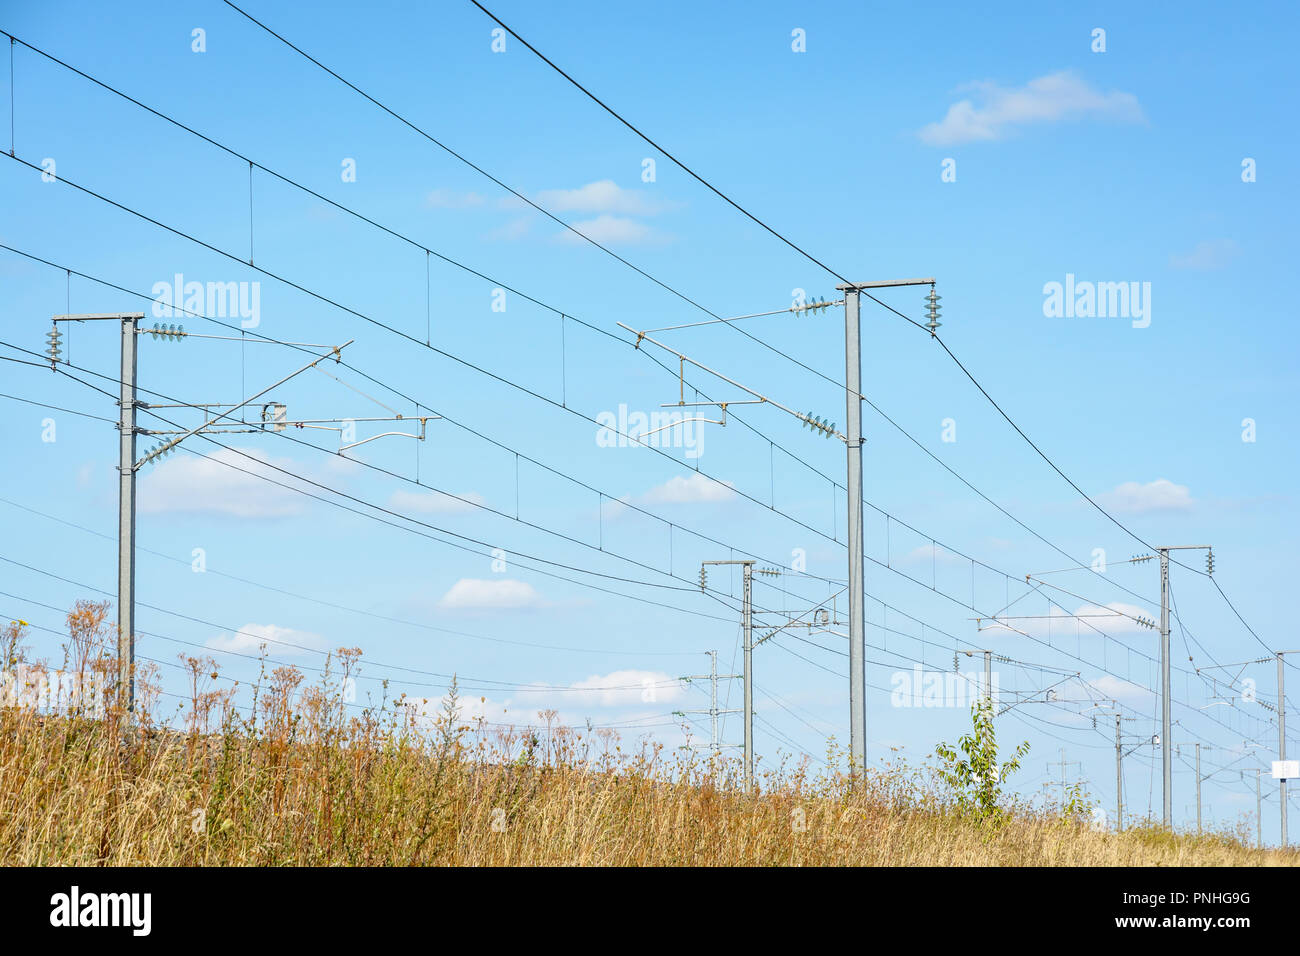 Overhead line equipment of the LGV Est, the East European high speed railway, with posts, catenaries and power lines to supply electricity to trains. Stock Photo